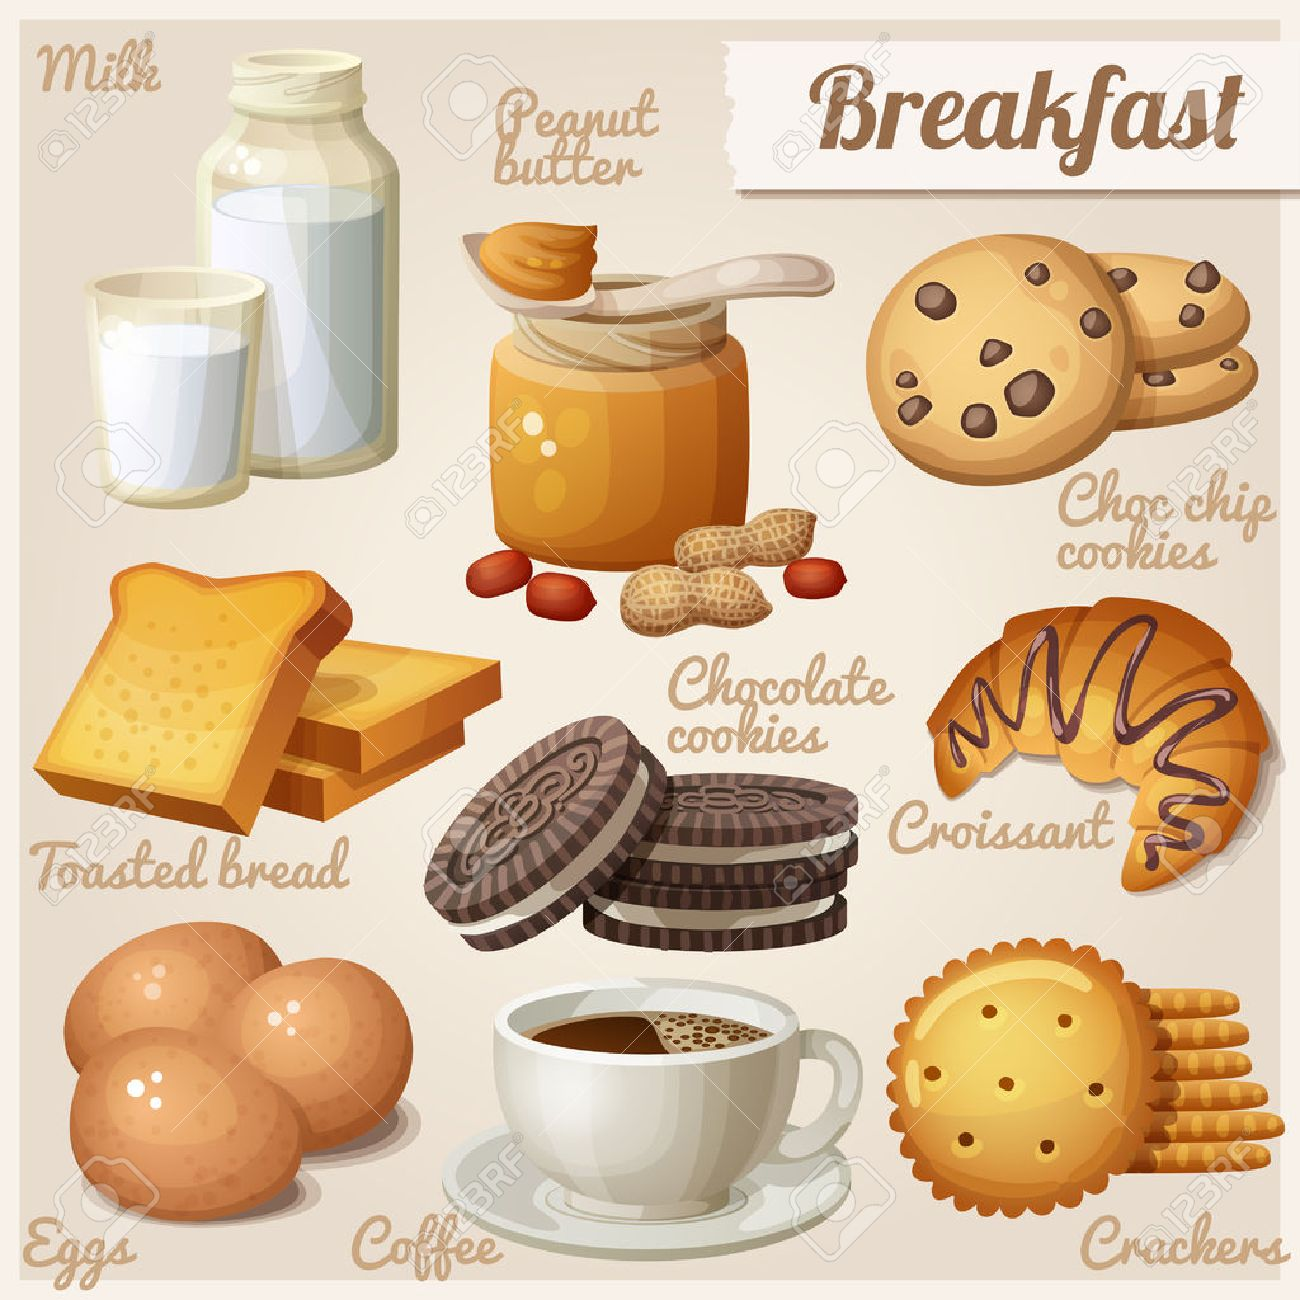 Breakfast 3. Set of cartoon vector food icons. Milk, peanut butter, choc chip cookies, toasted bread, chocolate cookies, croissant, eggs, coffee, crackers - 52776689